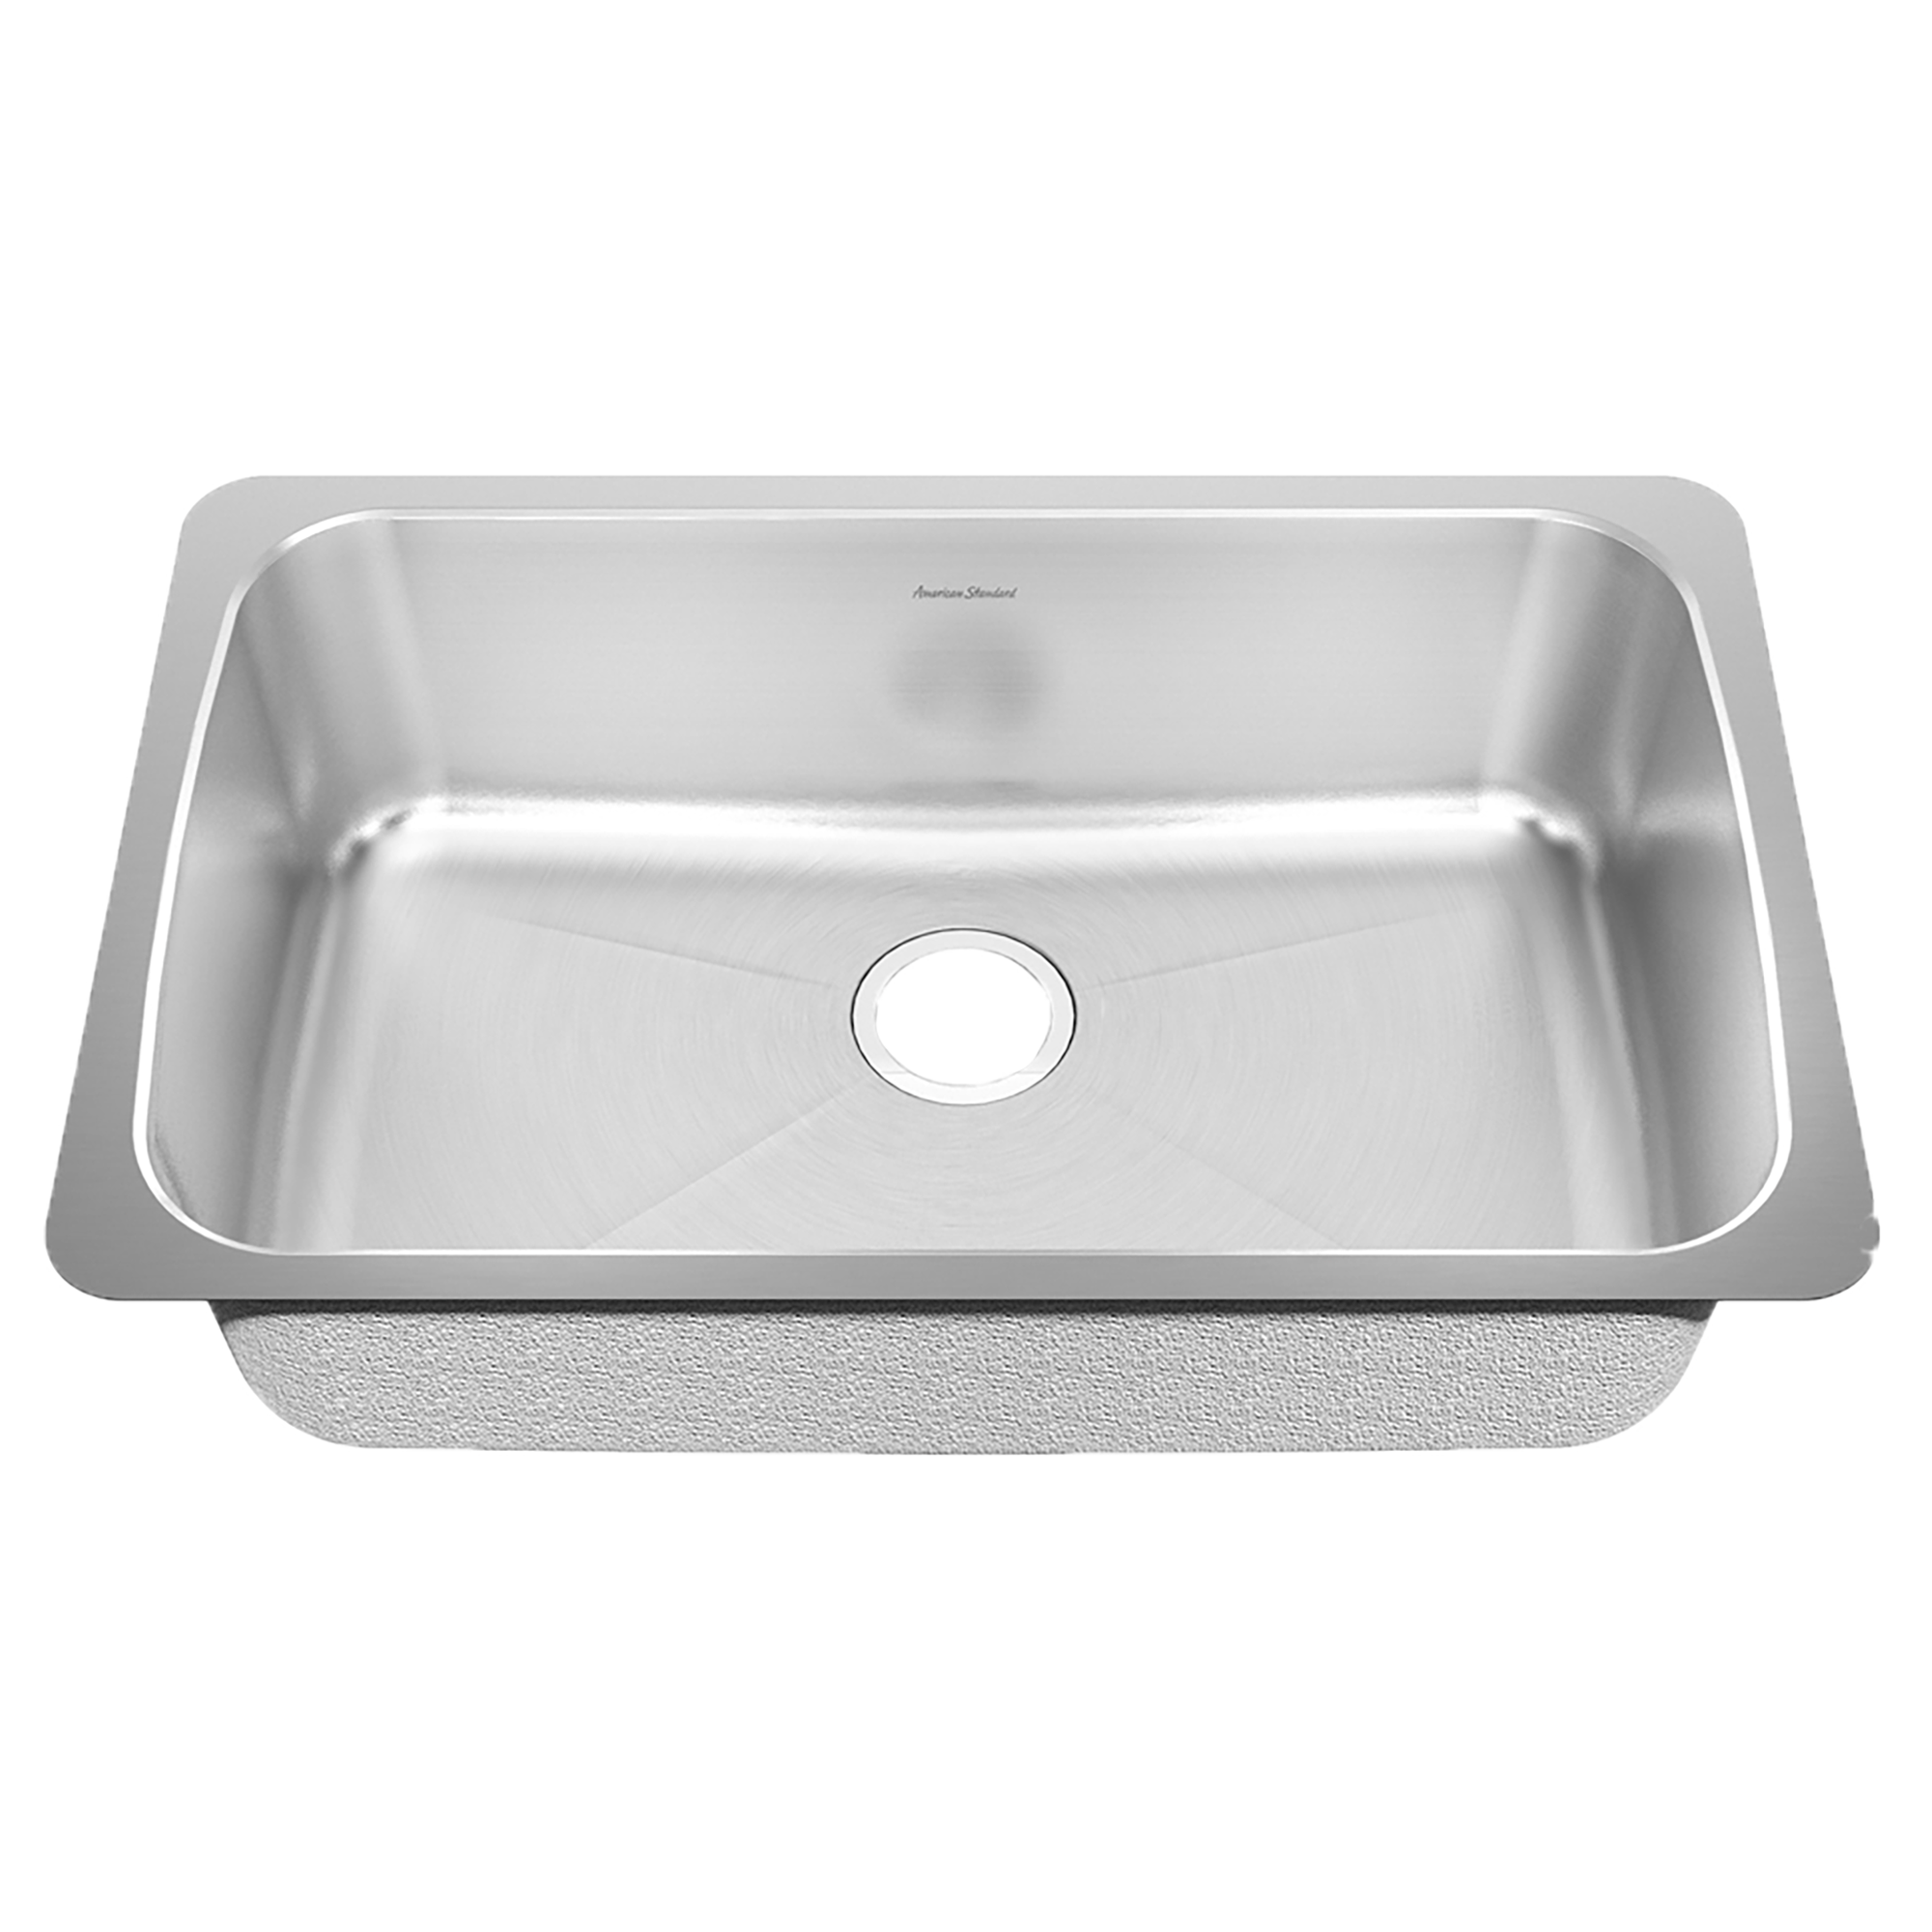 Prevoir Stainless Steel Undermount 1-Bowl Kitchen Sink - American Standard - Sink PNG HD